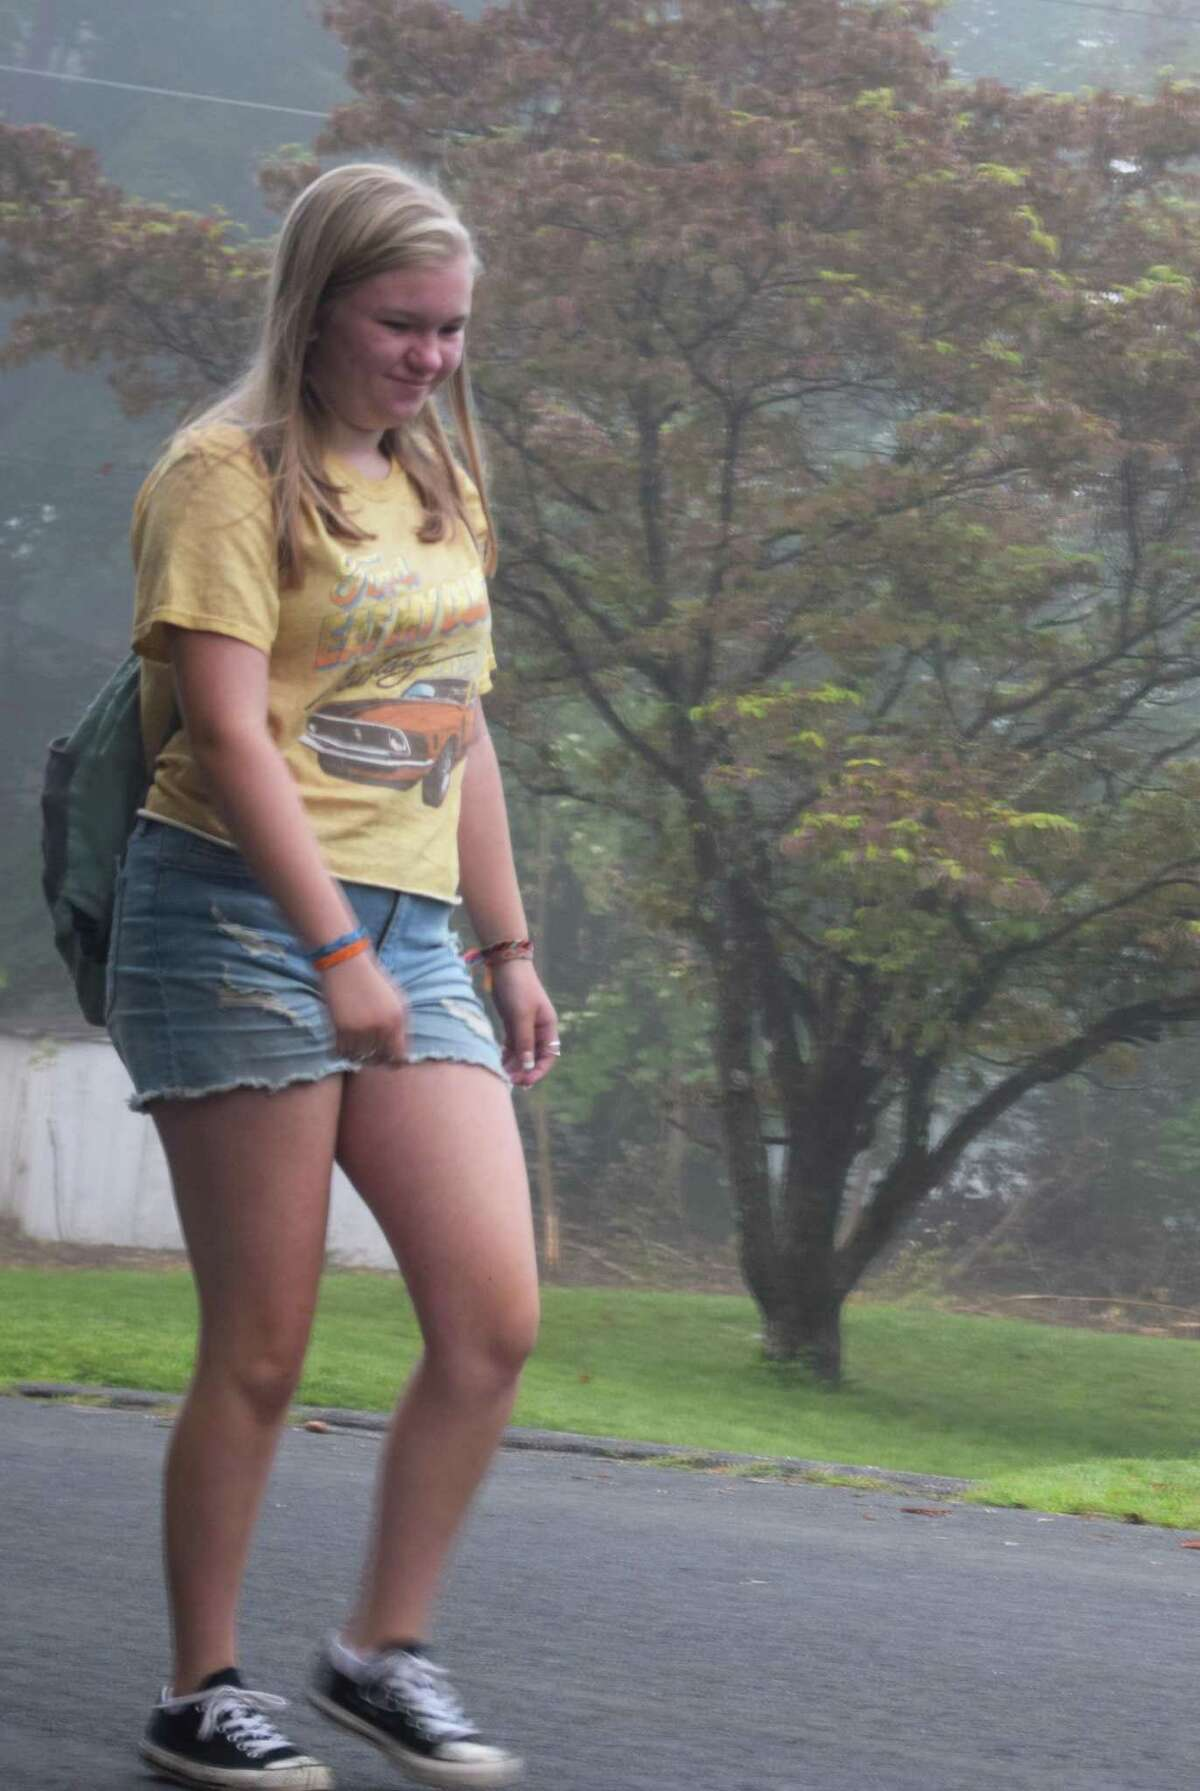 Marissa Gillette makes her way through the early morning fog on her way to the bus stop for her first day of school as a freshman at New Milford High School.